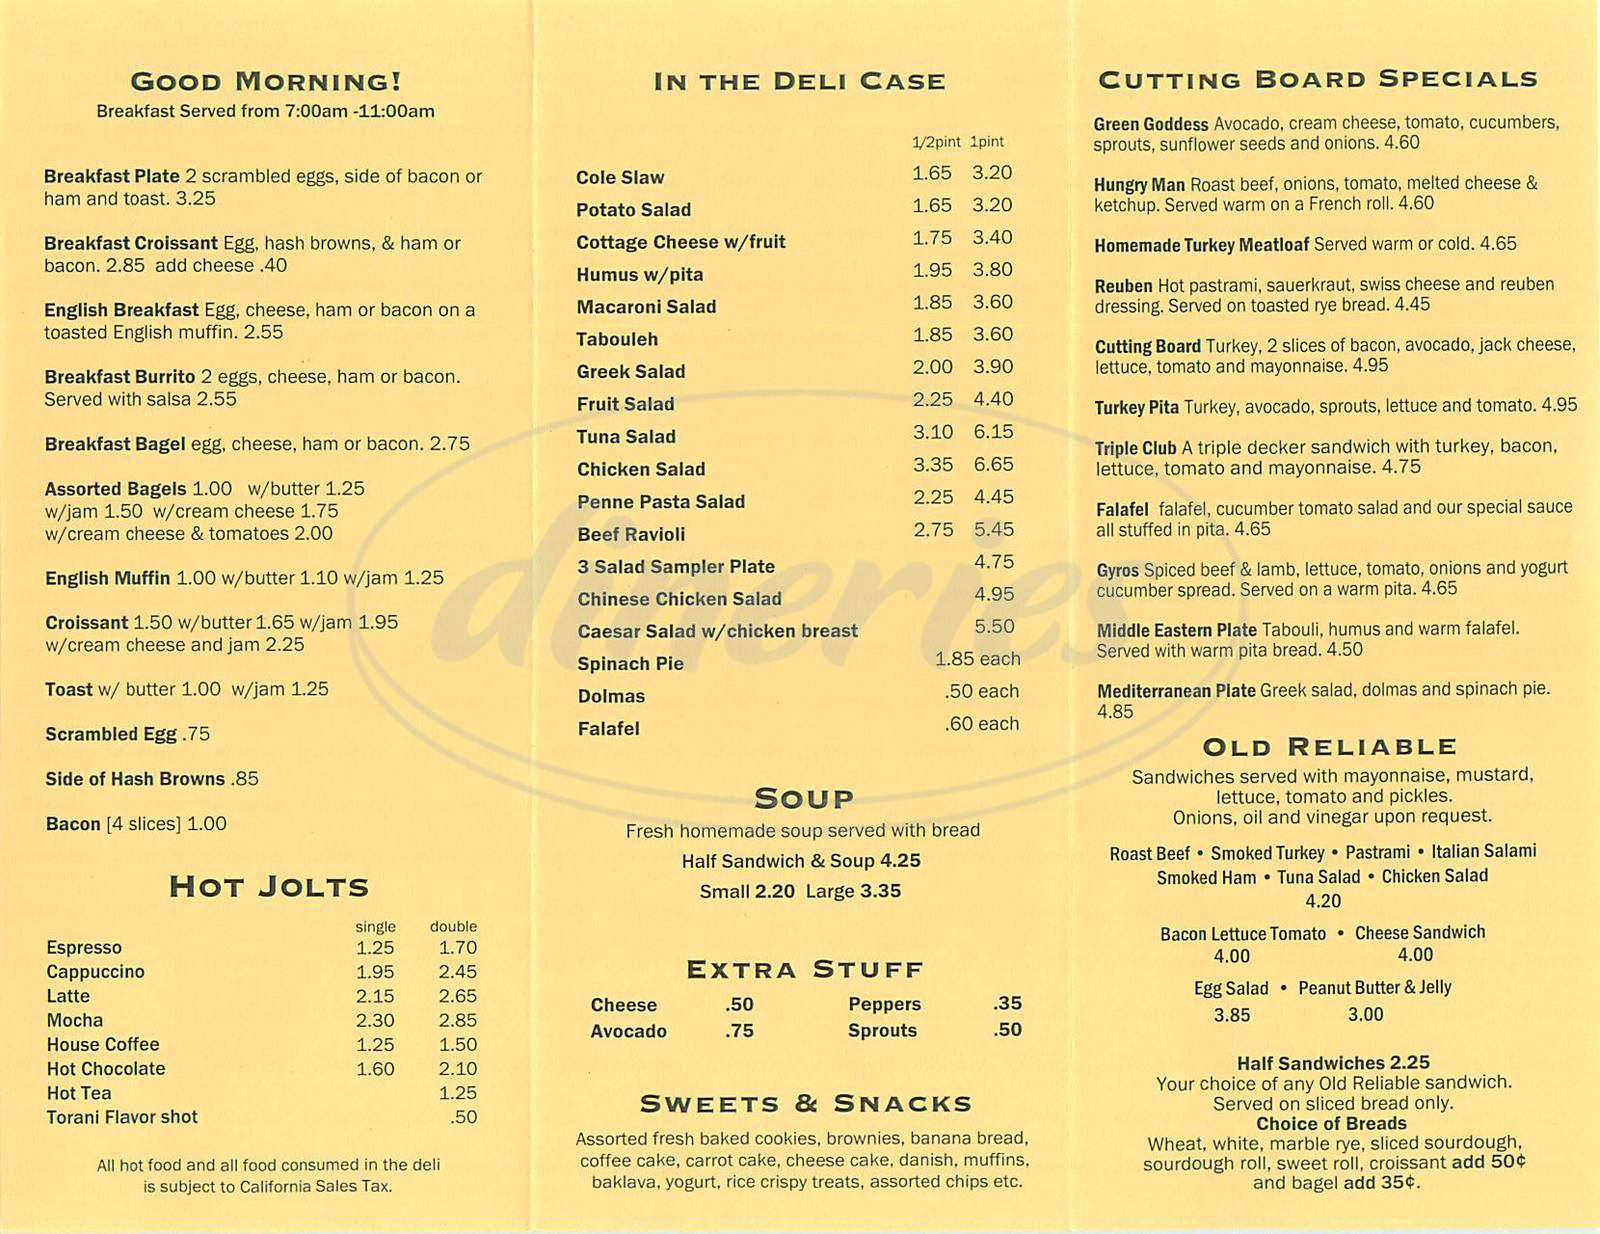 menu for Cutting Board Deli